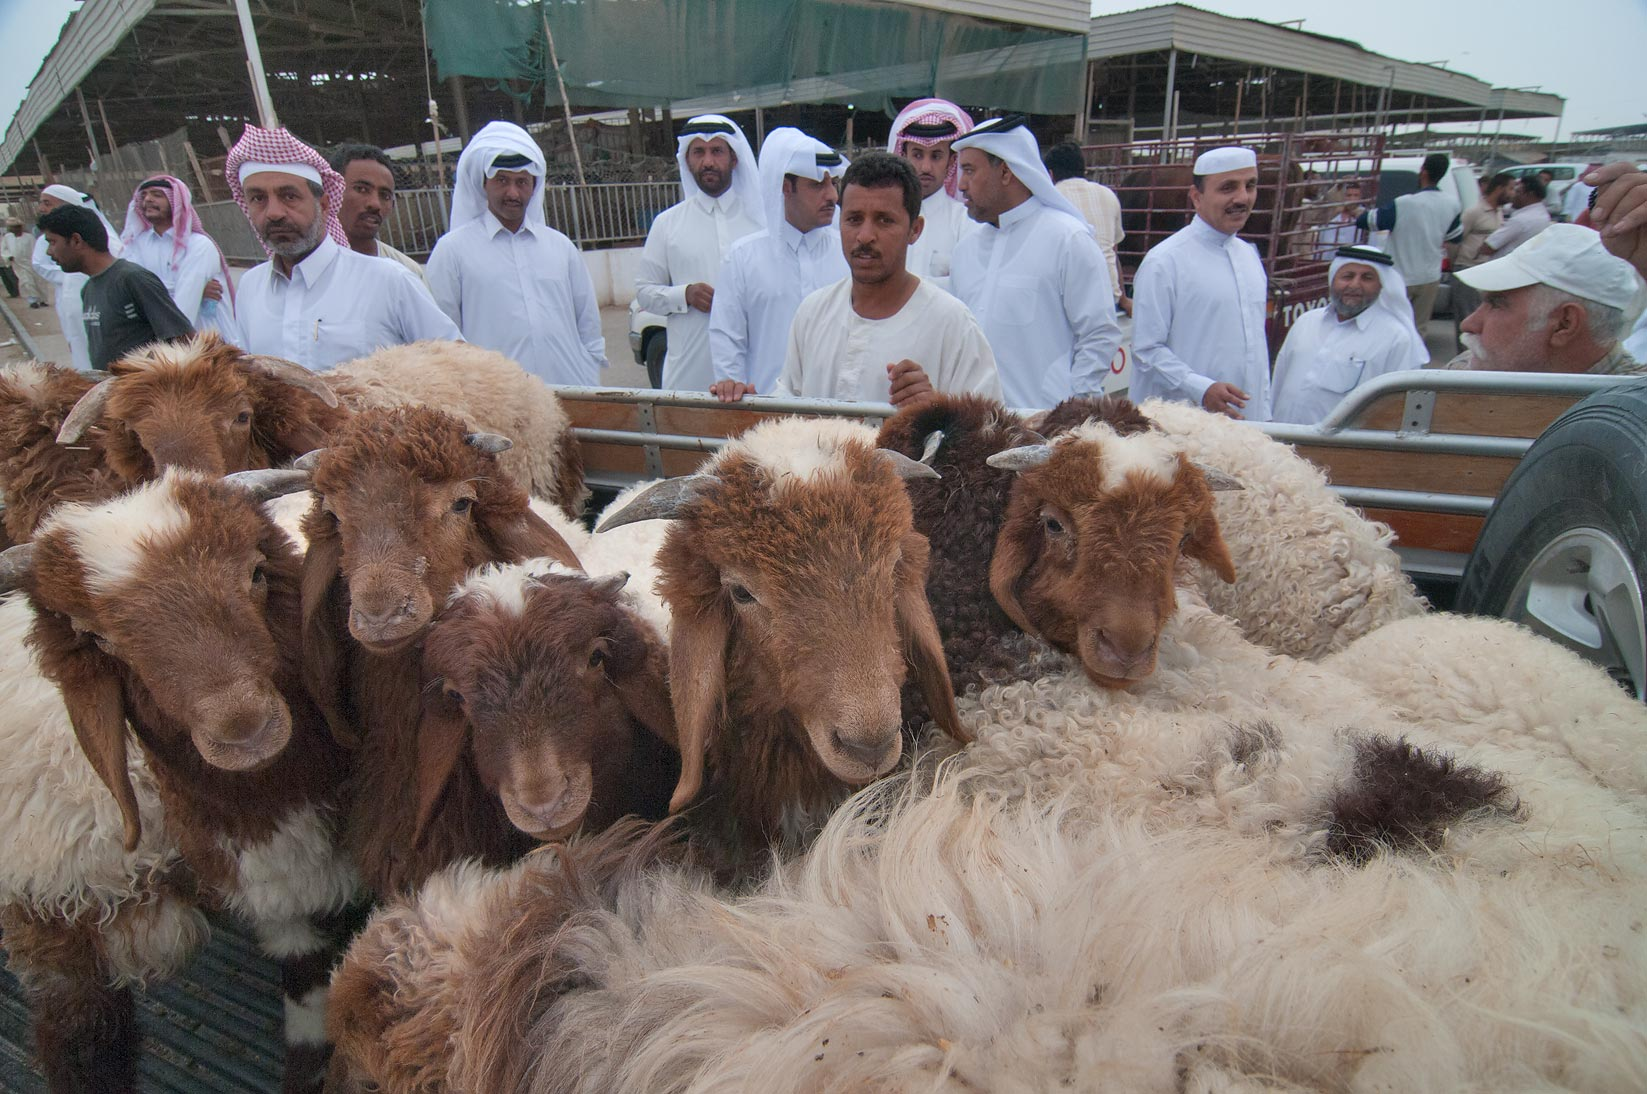 Sheep sold from a truck on auction in Sheep Market, Wholesale Markets area. Doha, Qatar